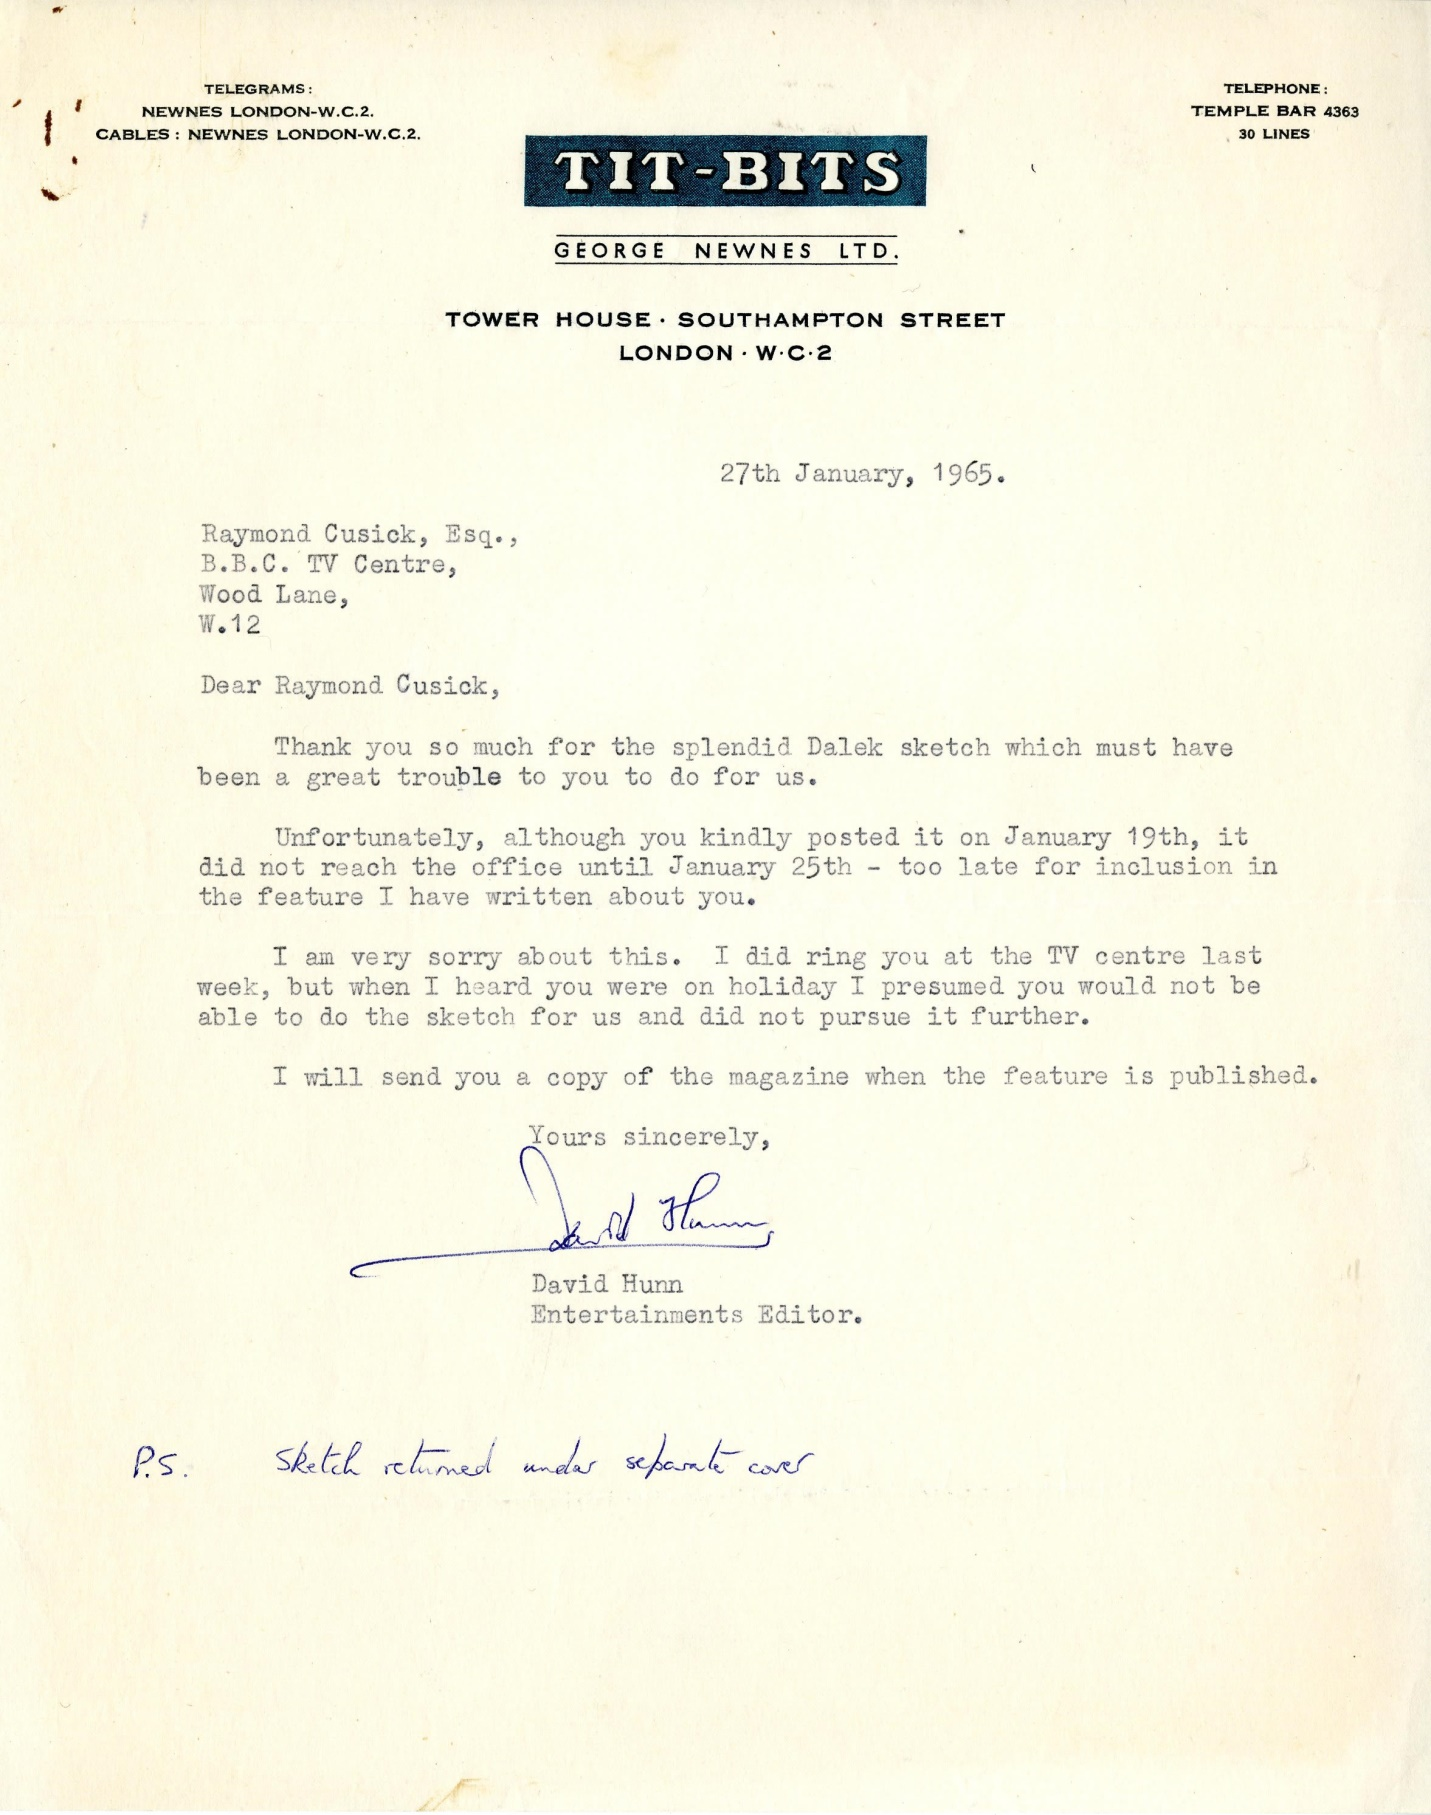 Letter from Titbits editor to Raymond Cusick regarding article to be published in the February 13, 1965 edition (from the Raymond Cusick personal collection)